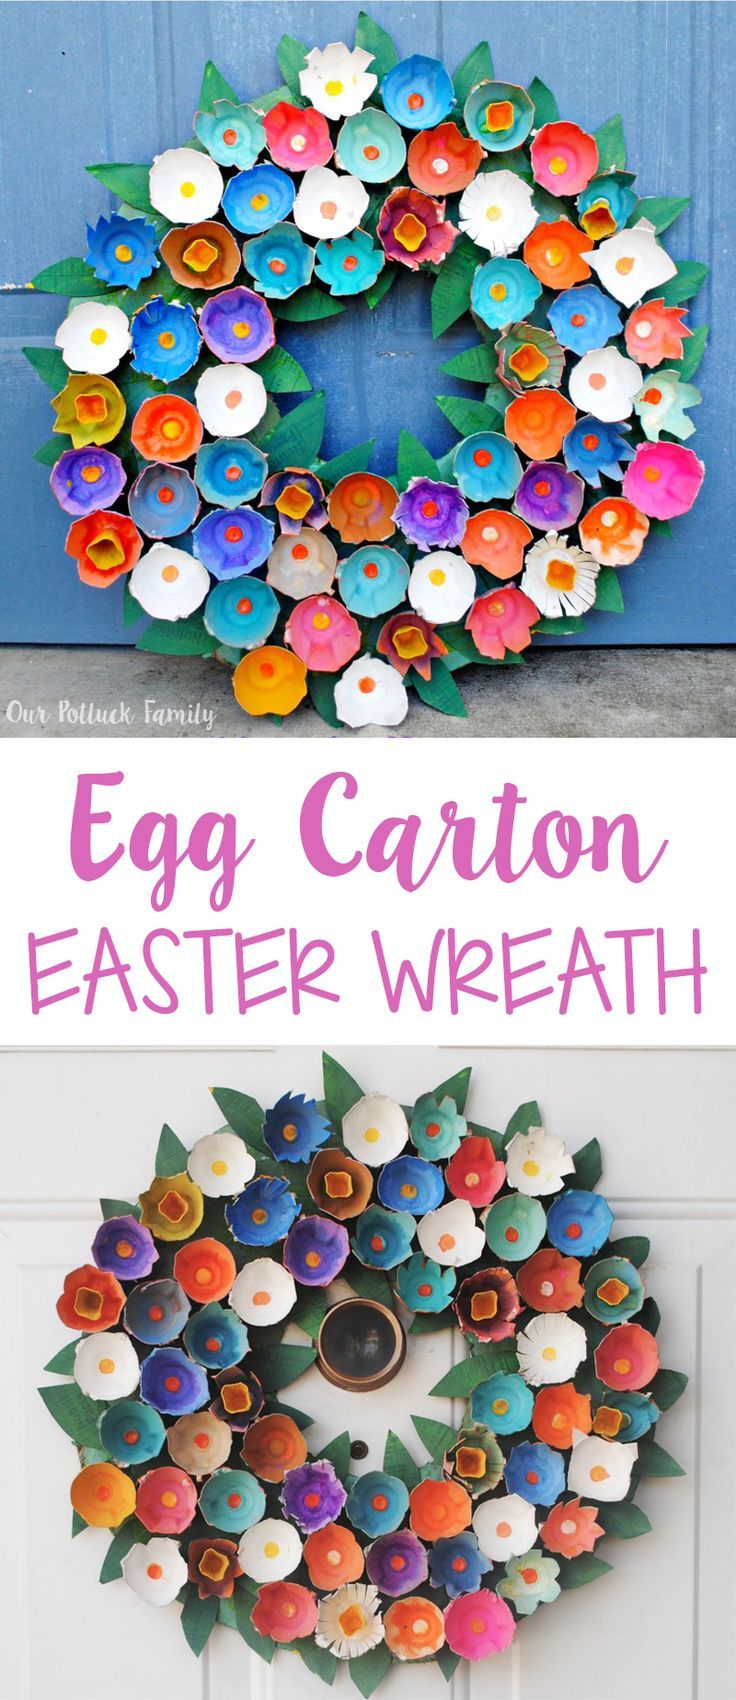 step by step directions to create a beautiful egg carton wreath step by step directions to create a beautiful egg carton wreath for easter